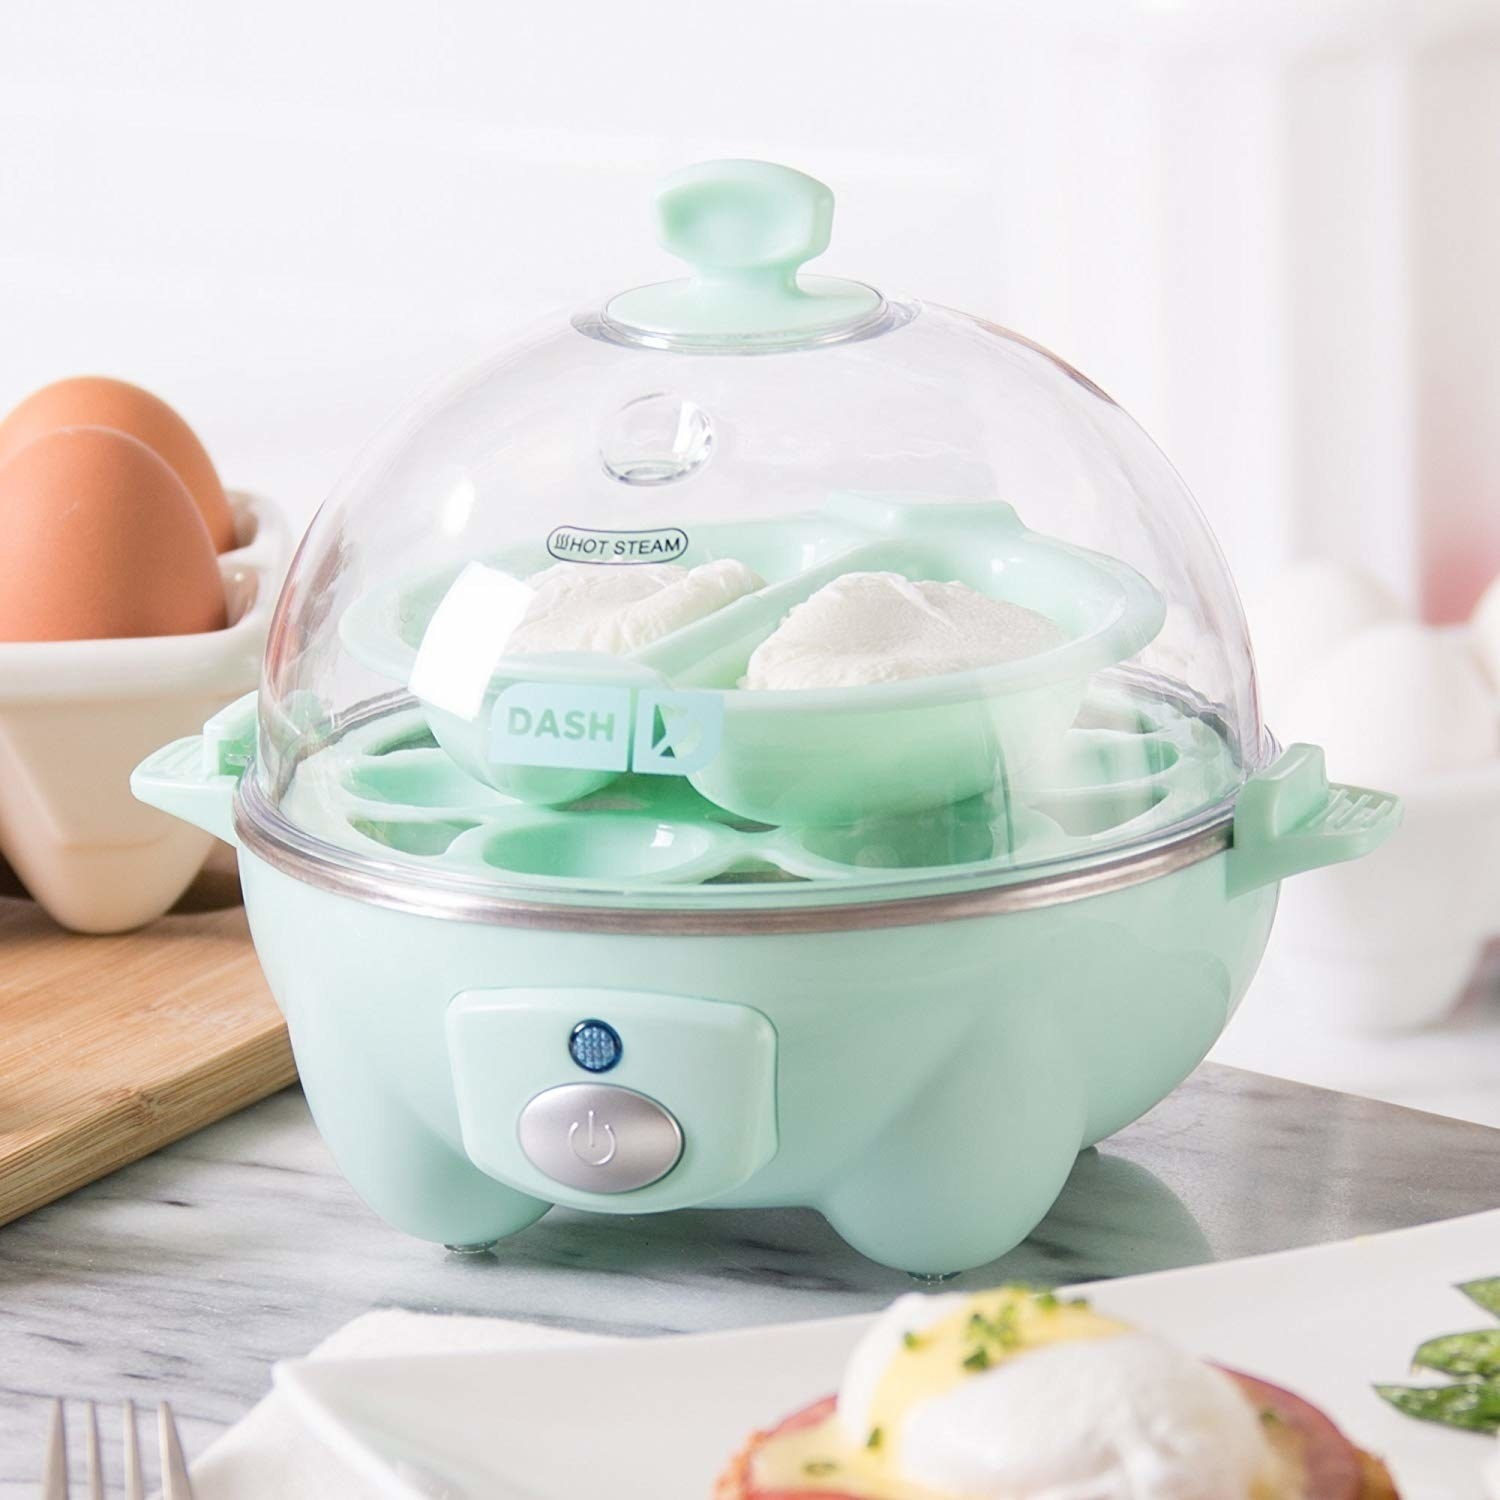 The little domed egg cooker, which has a mint base with a power button and a clear top that snaps on; two eggs are poaching in a tray